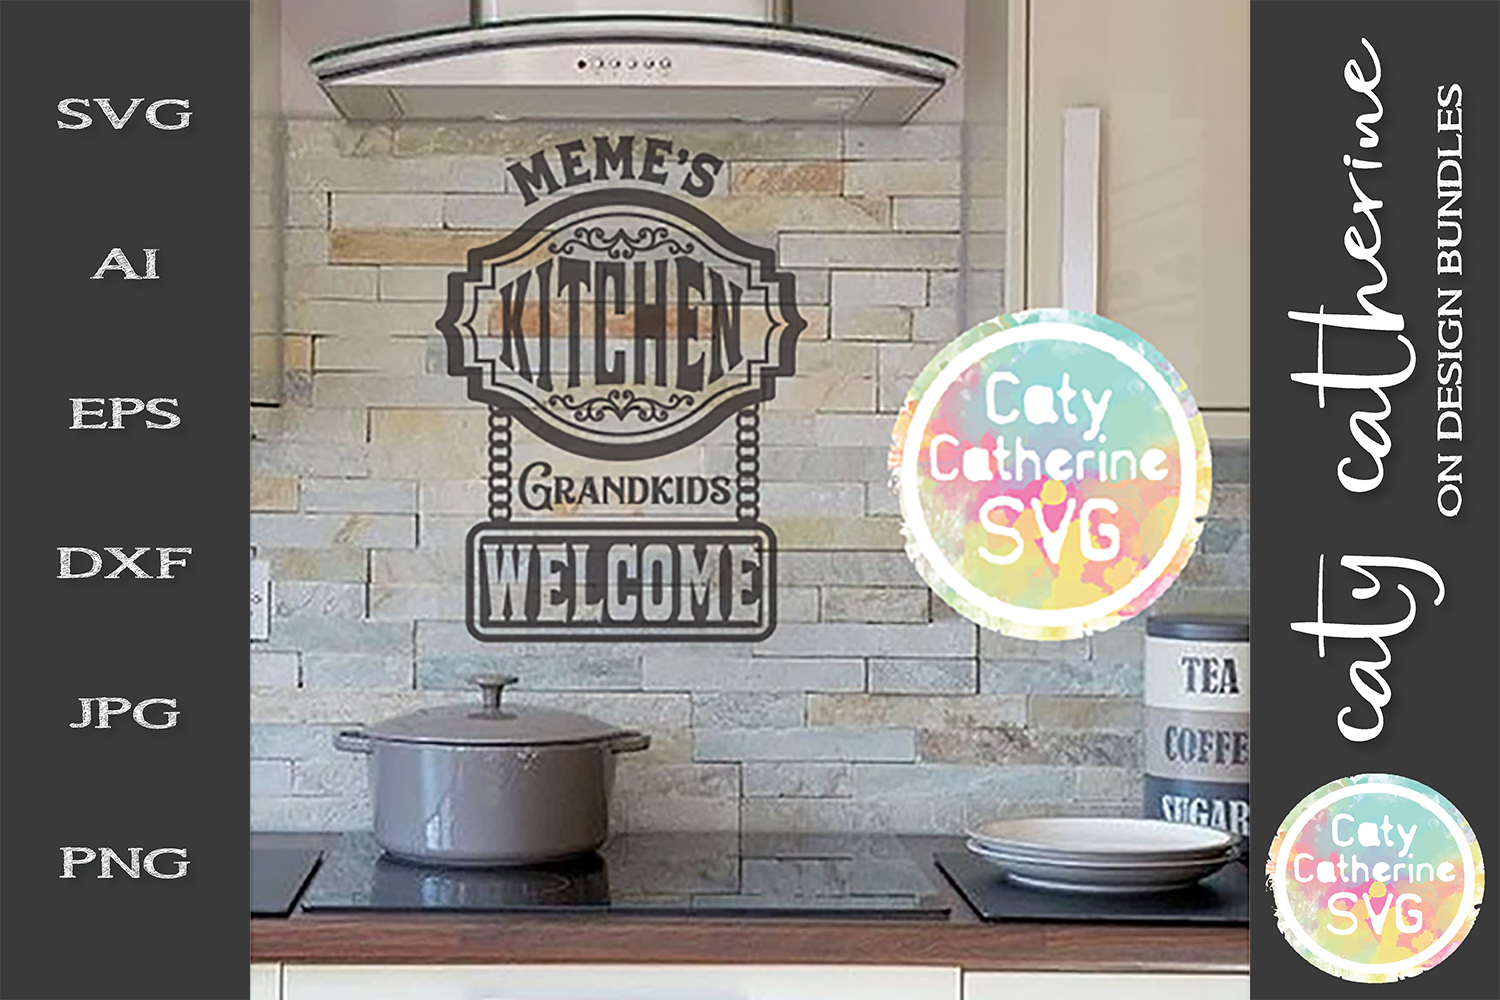 Meme's Kitchen Grandkids Welcome SVG Cut File example image 1